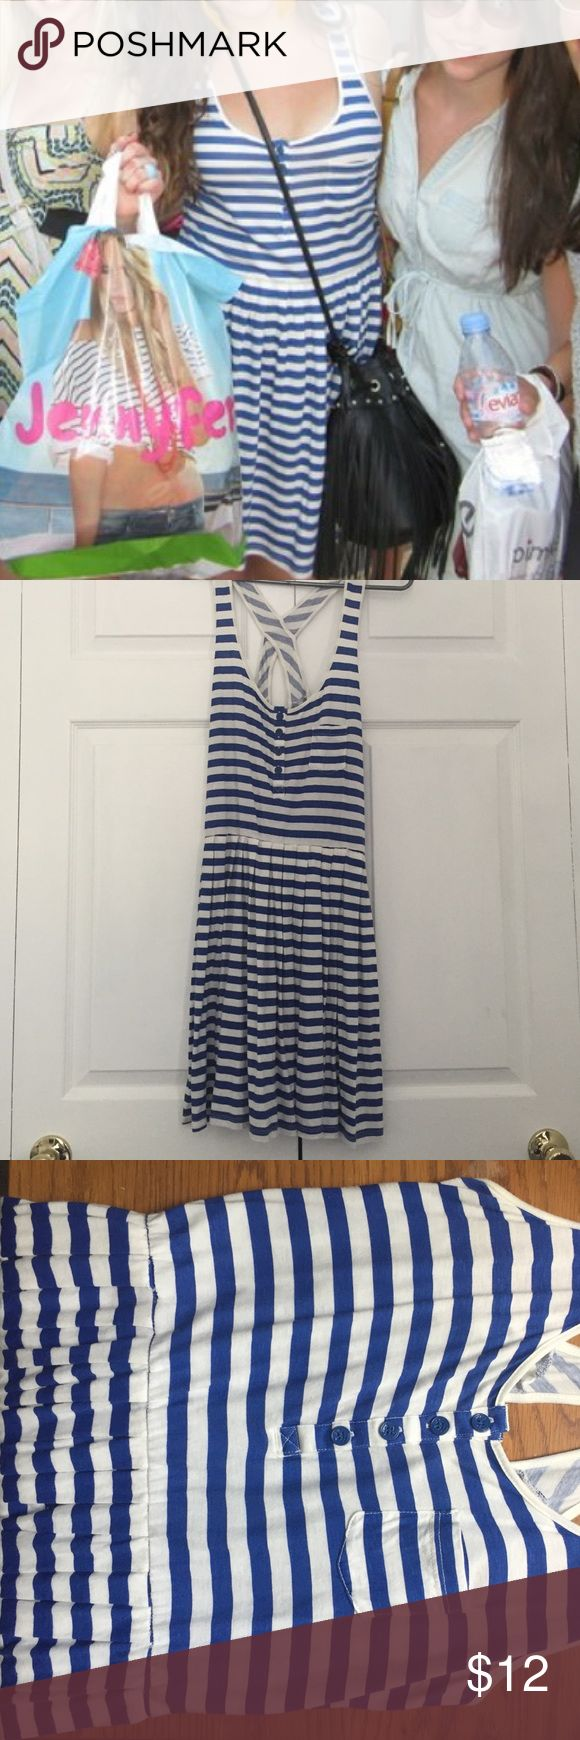 Blue and white striped sundress Super cute, lightweight sundress from Oysho. Purchased in Paris!! It's a light t-shirt material, and it hits a little above the knee. The skirt starts at the natural waist, and is pleated. The back is super cute and has a racerback with a large keyhole. Forever 21 Dresses Mini